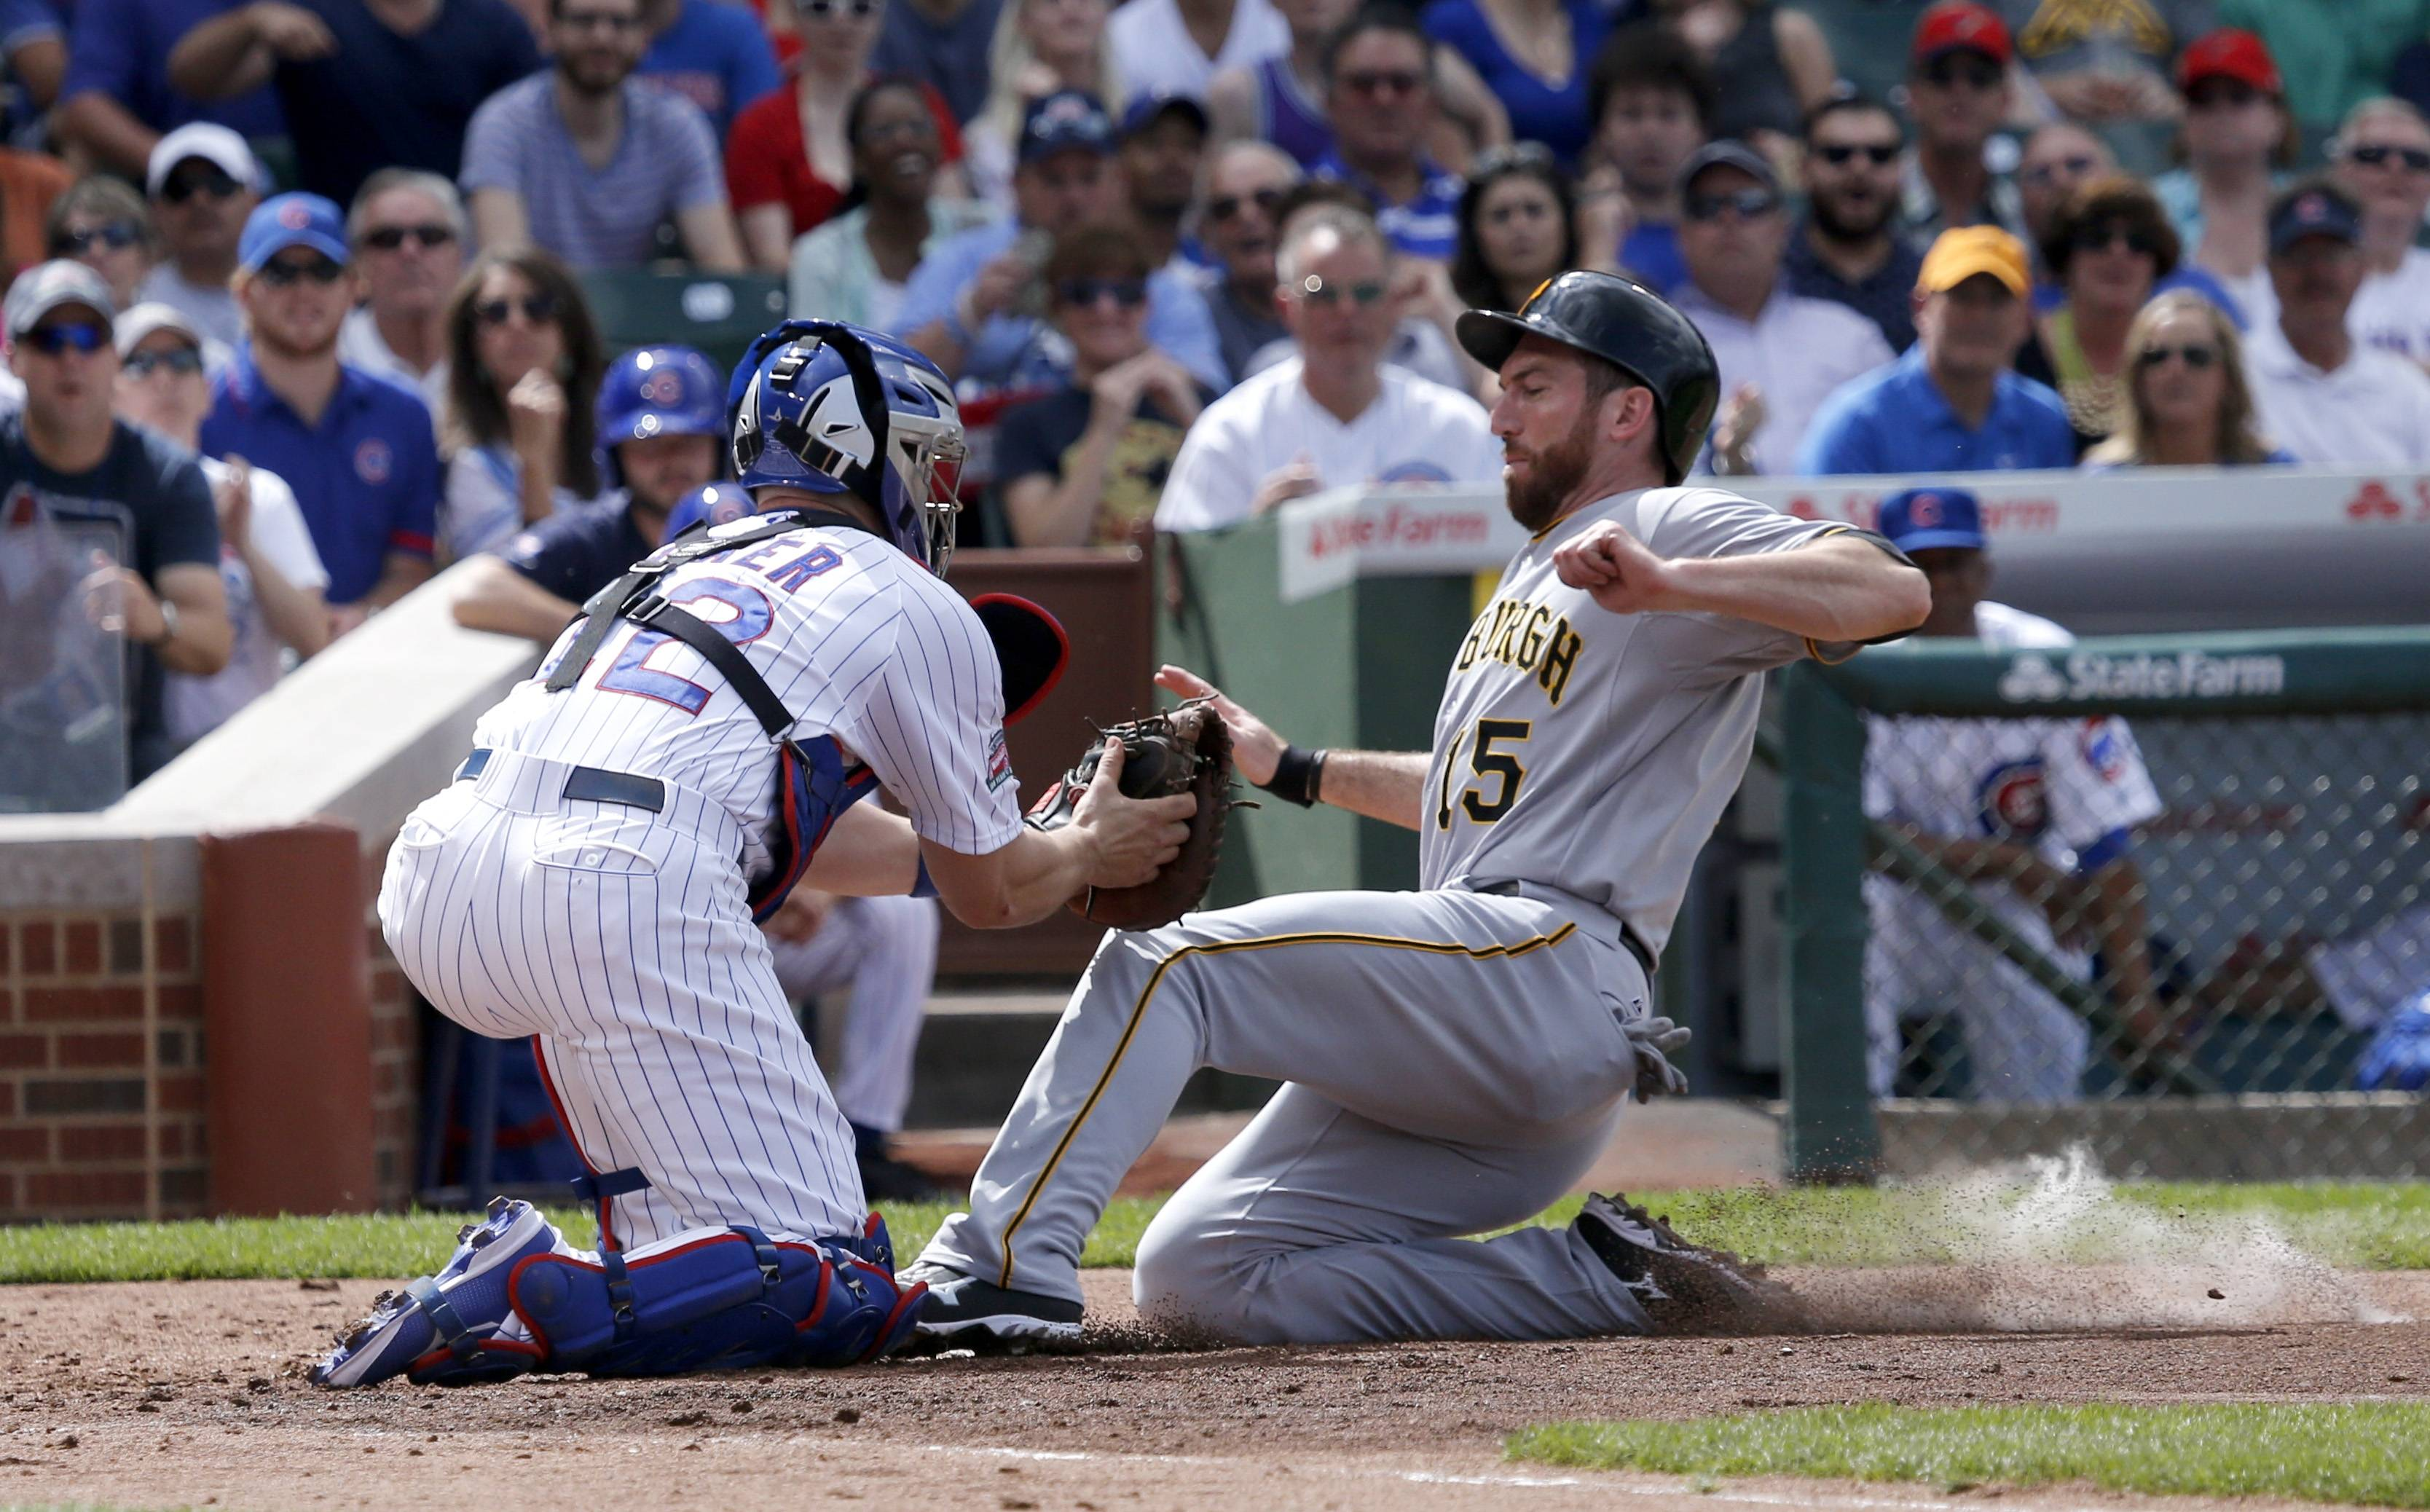 Chicago Cubs catcher John Baker, left, tags out Pittsburgh Pirates' Ike Davis at home plate during the second inning of Friday's win over the Pirates. The play was upheld on video review.